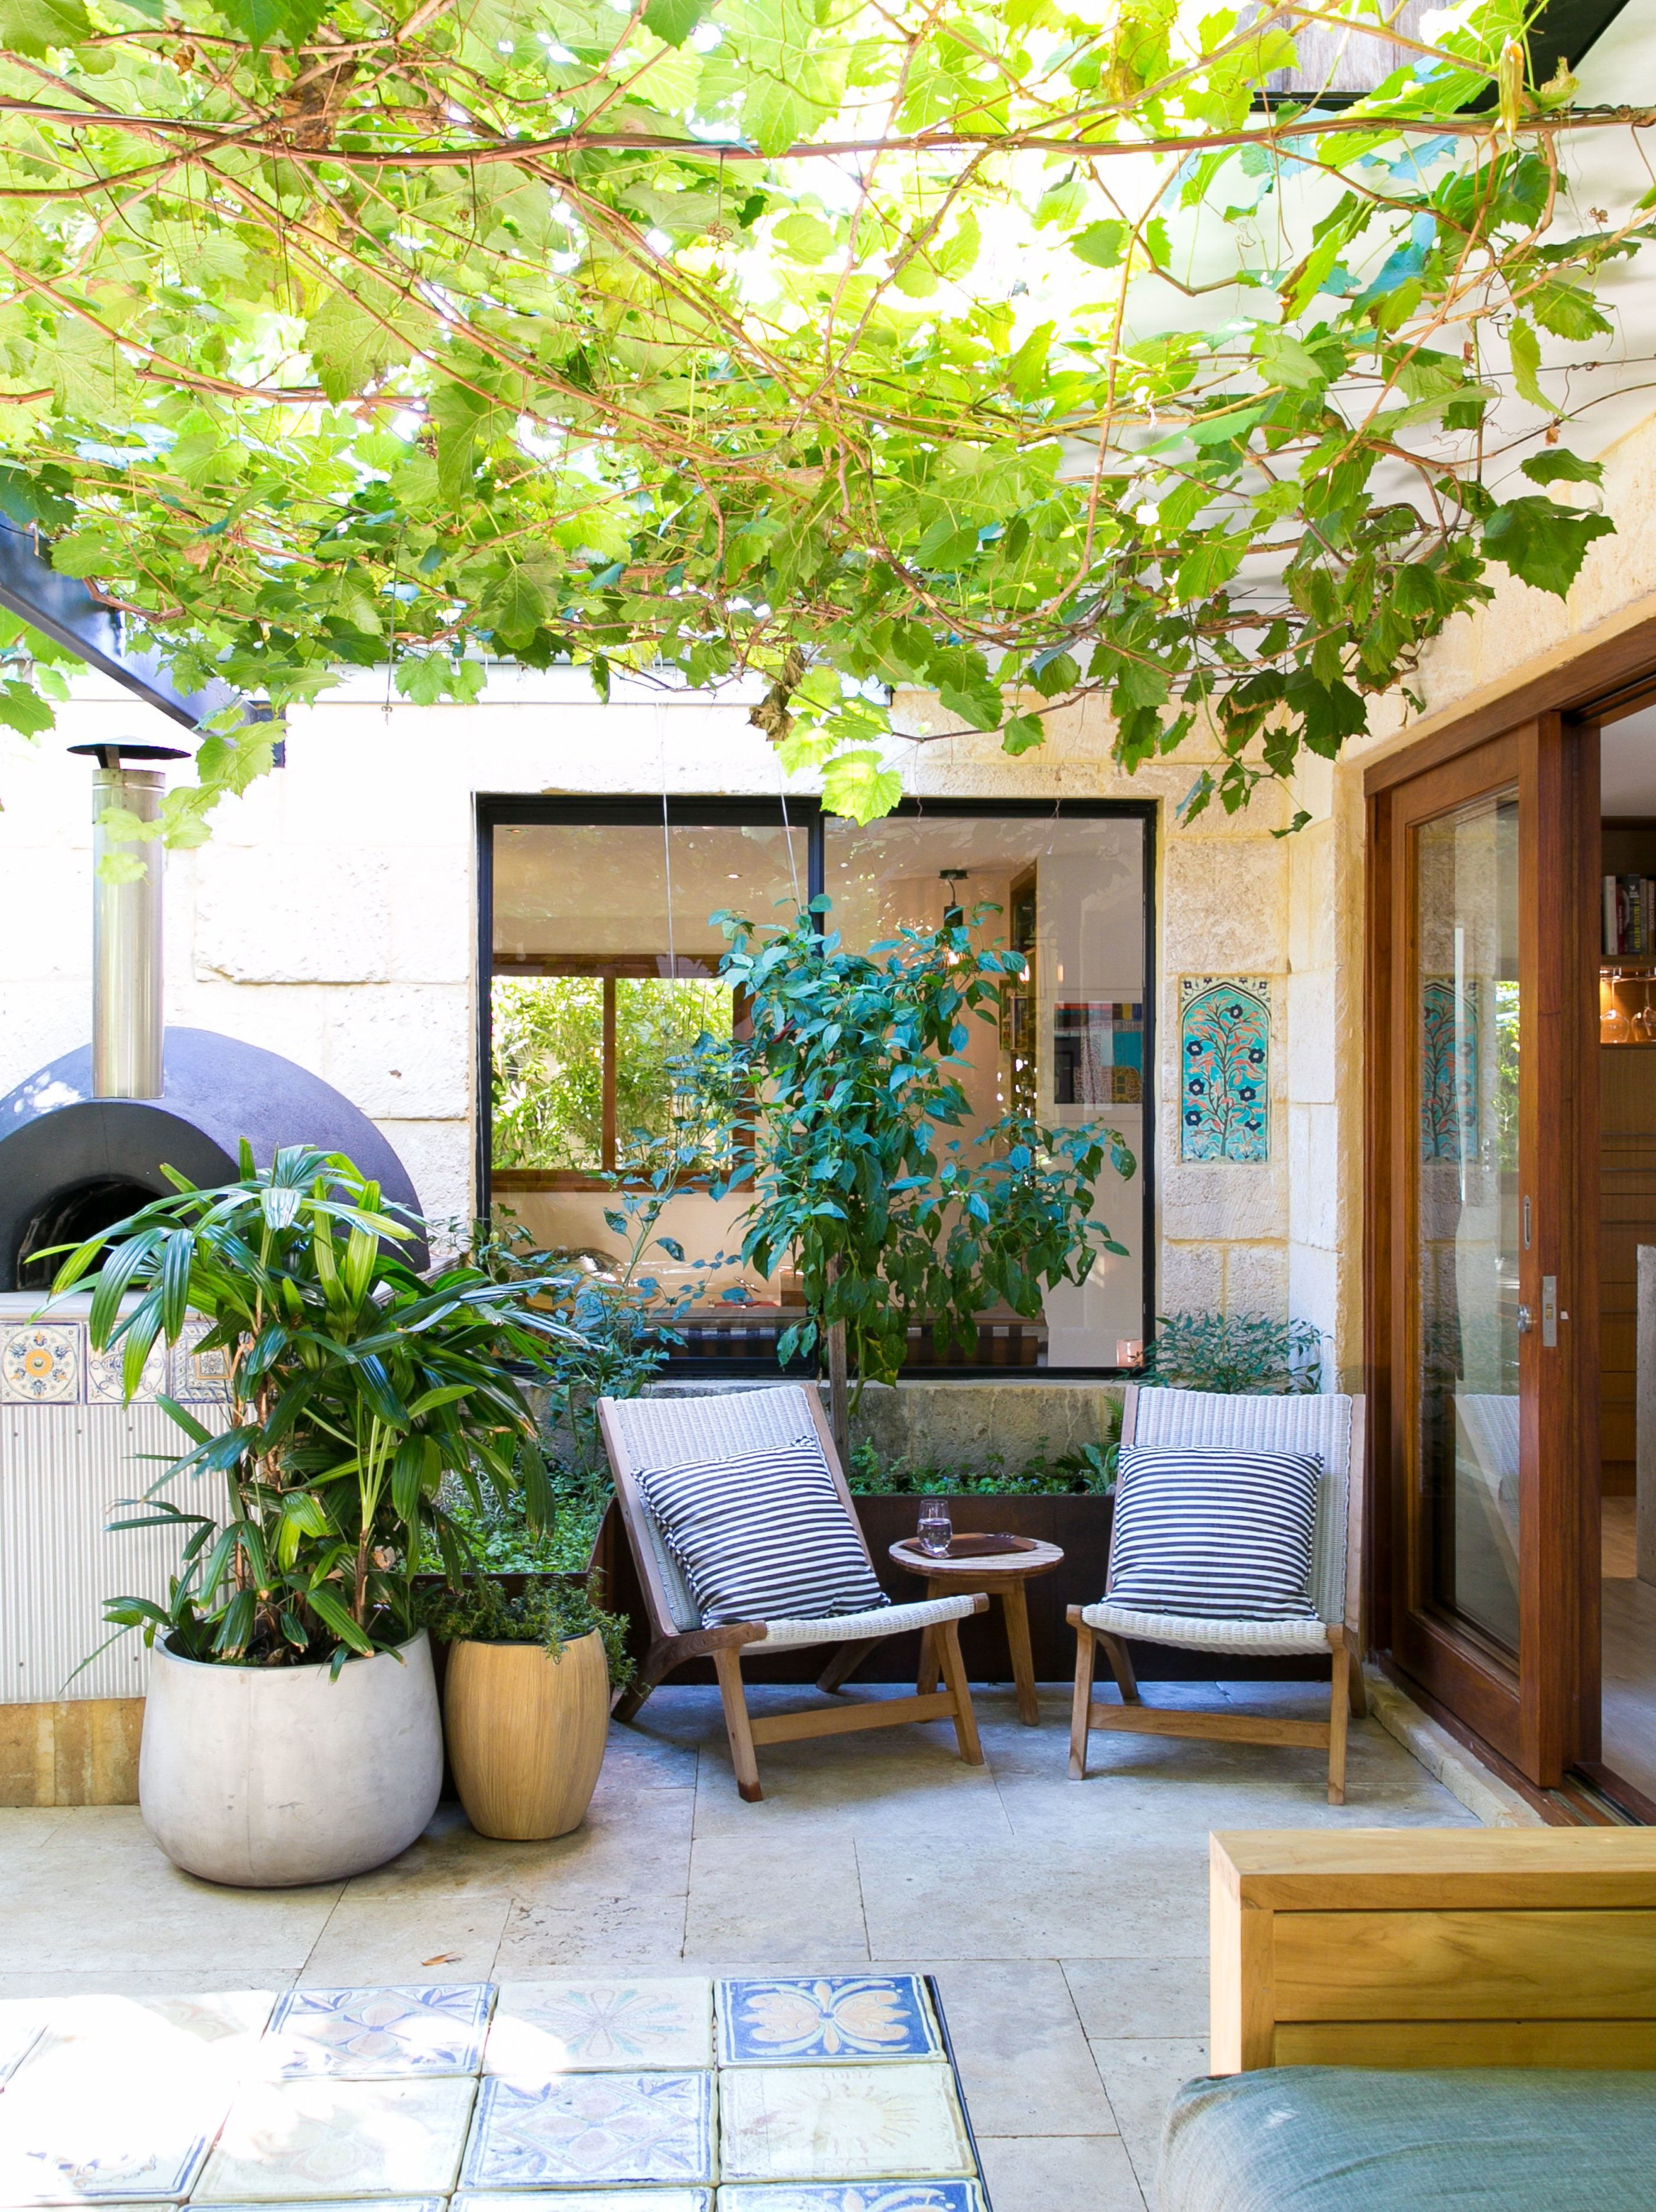 Small but lovely patio ascher and dylans modern gorgeously landscaped australian home house tour